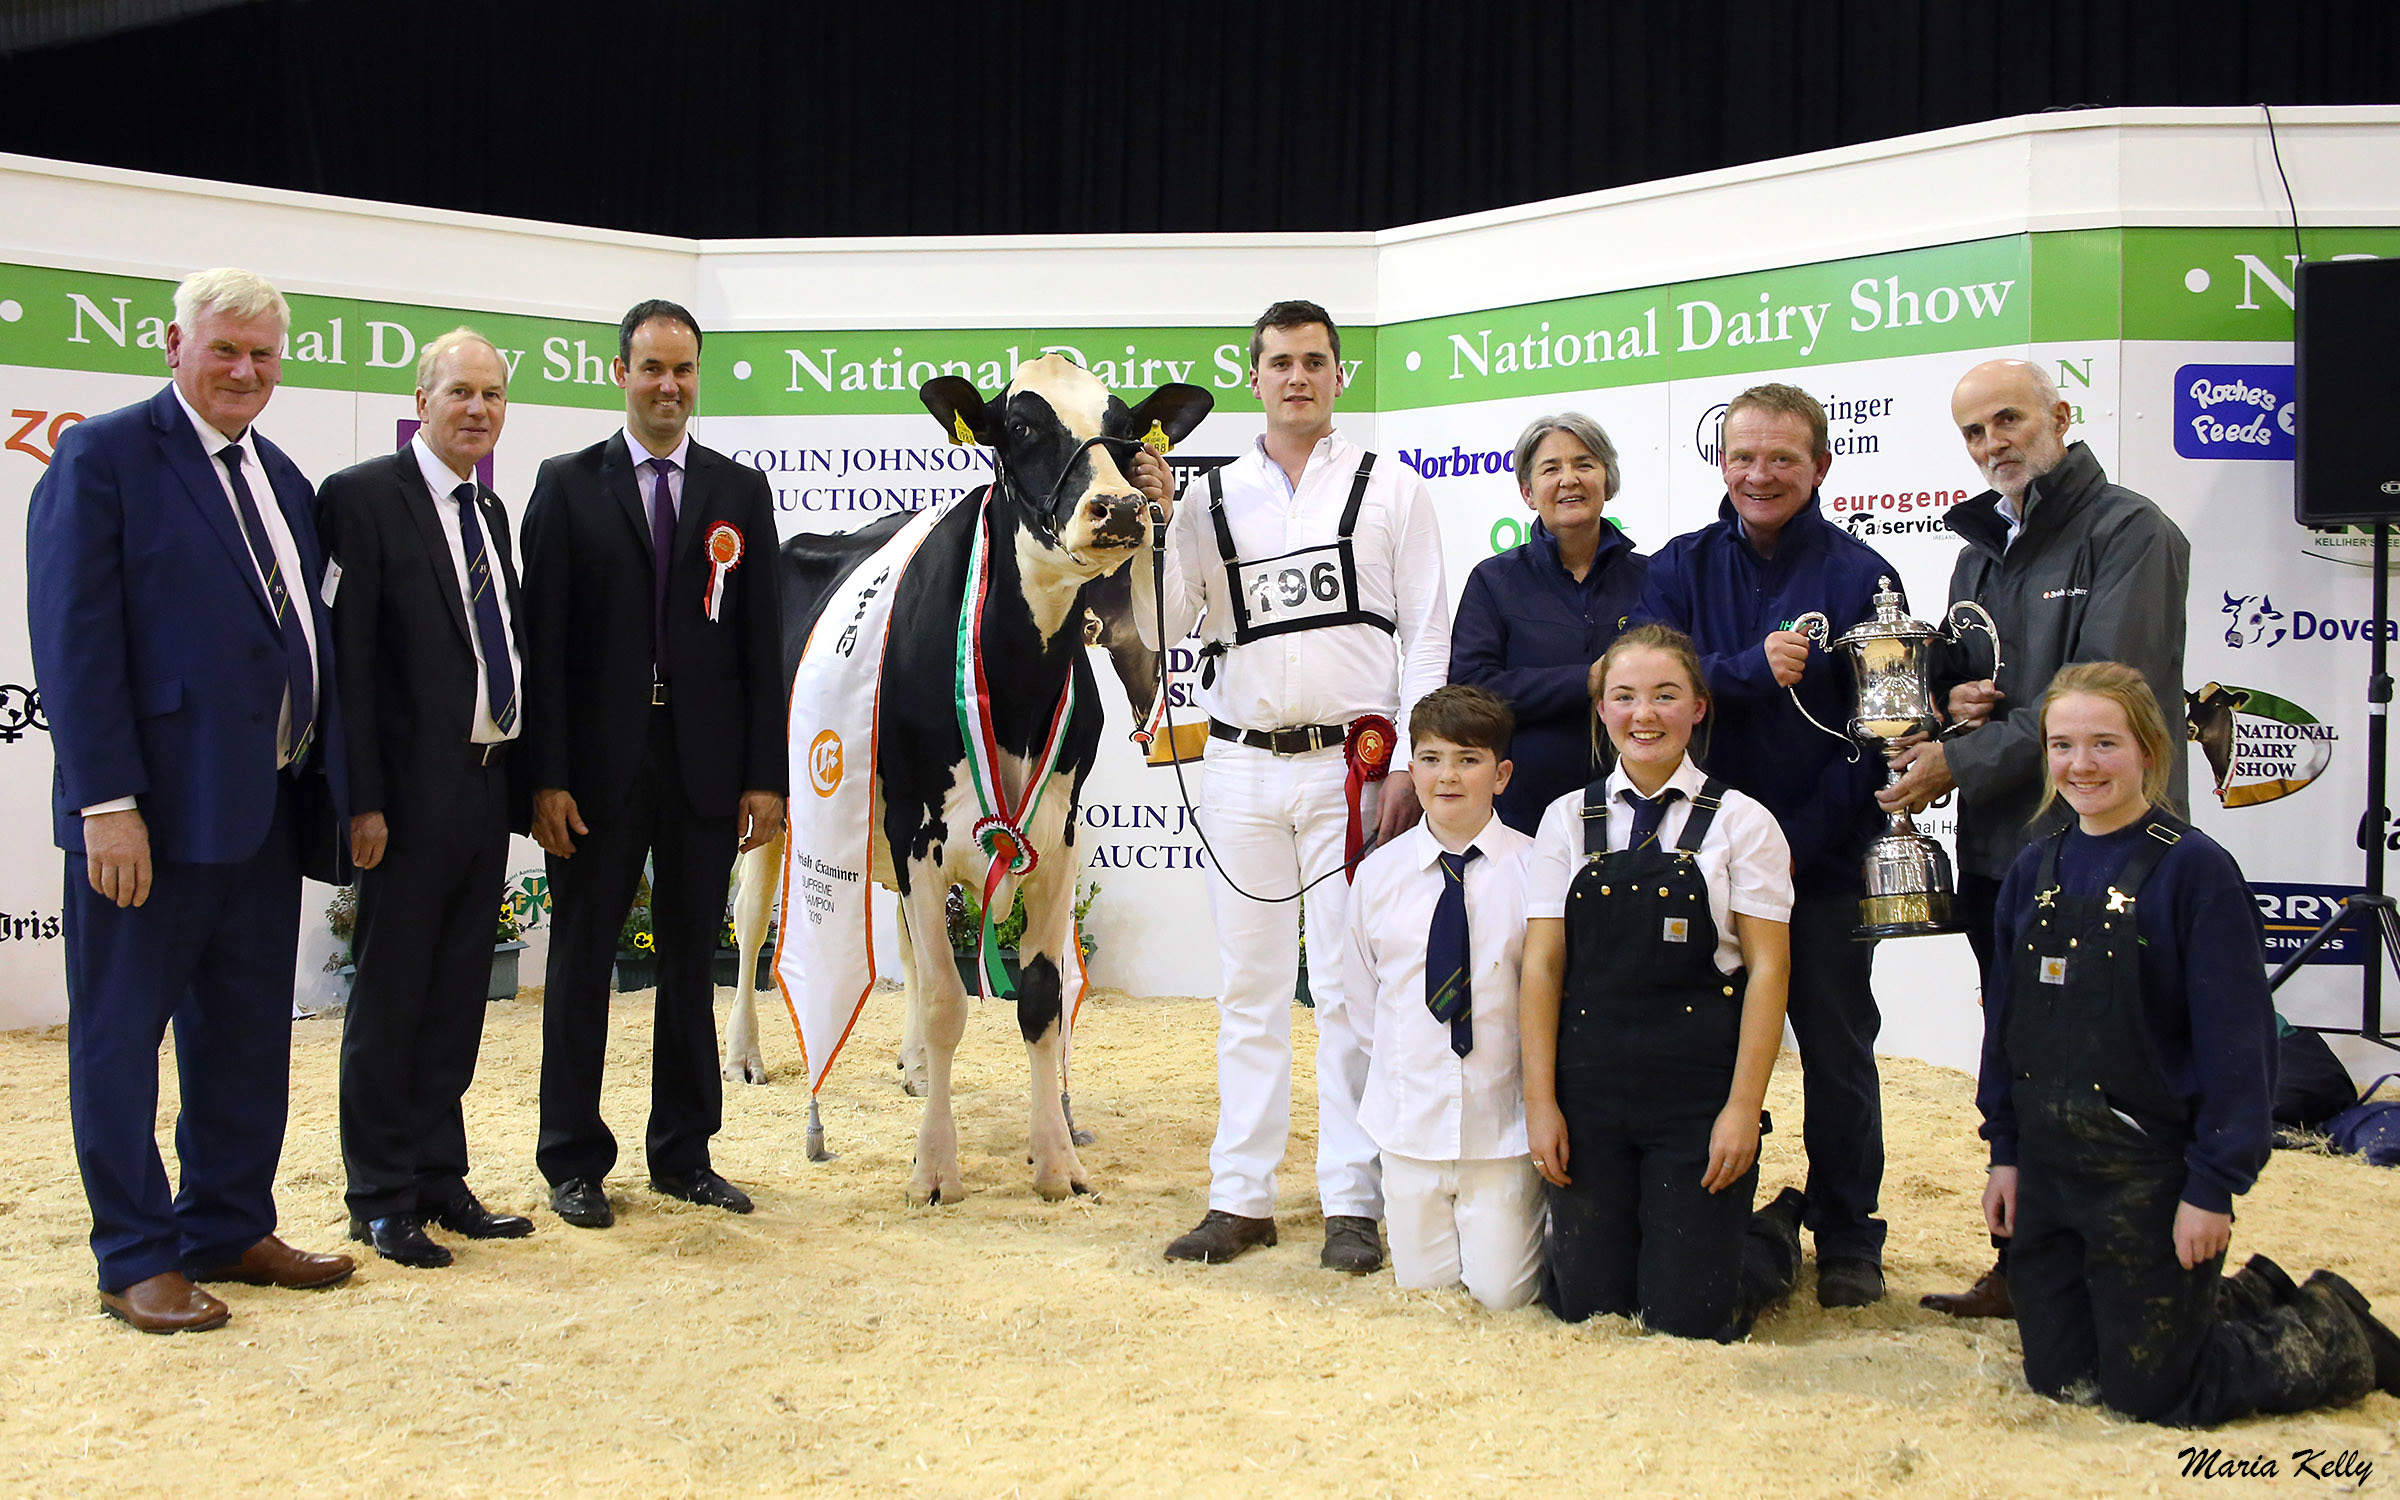 19-10-19,John Kirby, Director National Dairy Show, Charles Gallagher, Chief Executive, IHFA,  Erhard Junker, Judge with Lisnalty Megasire Rituel, owned by Paul Hannan, Irish Examiner Supreme Champion, handler Brendan Greenan with the Hannan family, Eileen, Jane, Clair and Bill, also pictured is Stephen Cadogan, Irish Examiner, Sponsor and. National Dairy Show, Green Glens, Millstreet 19th October 2019, Photo Maria Kelly